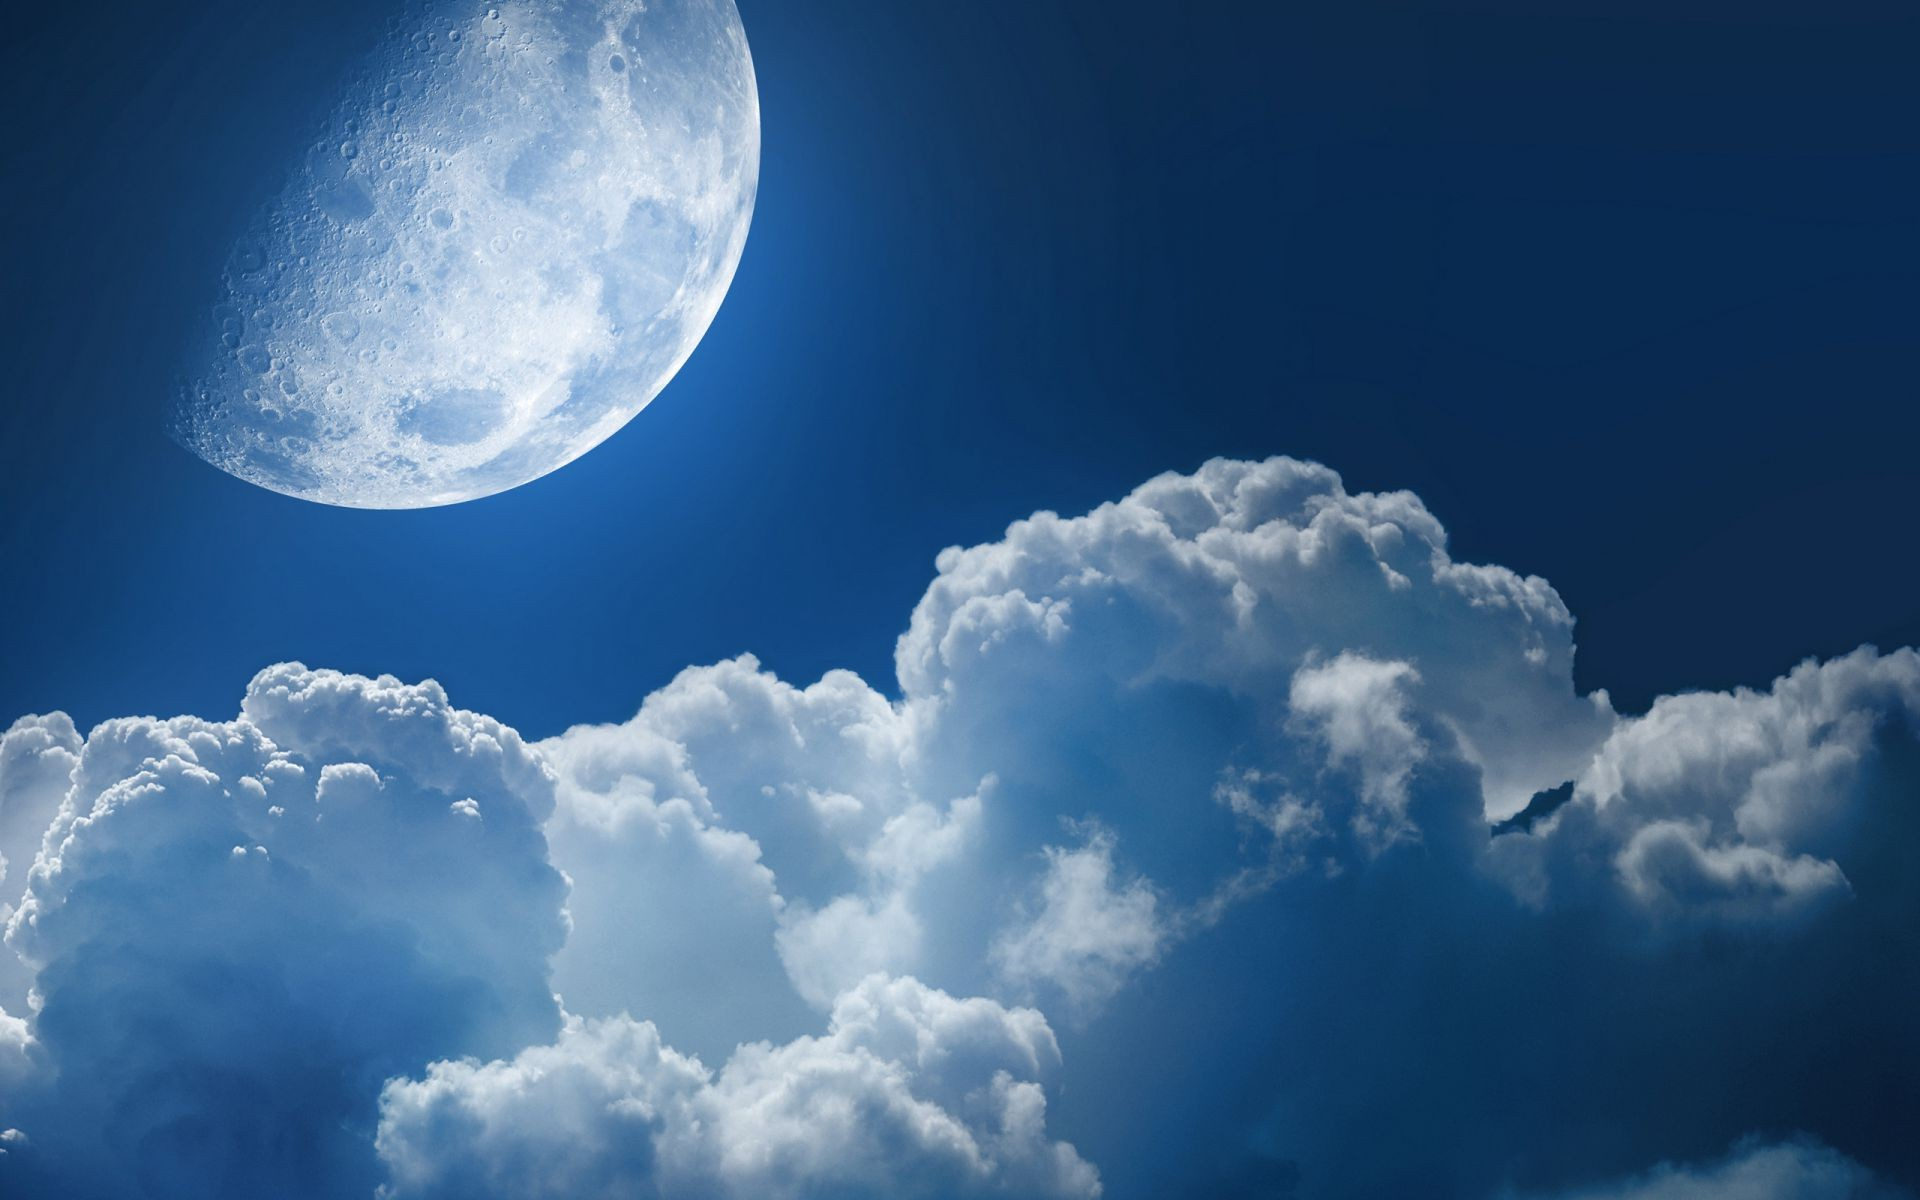 Planet Star Cloud Planet Clouds Space Moon